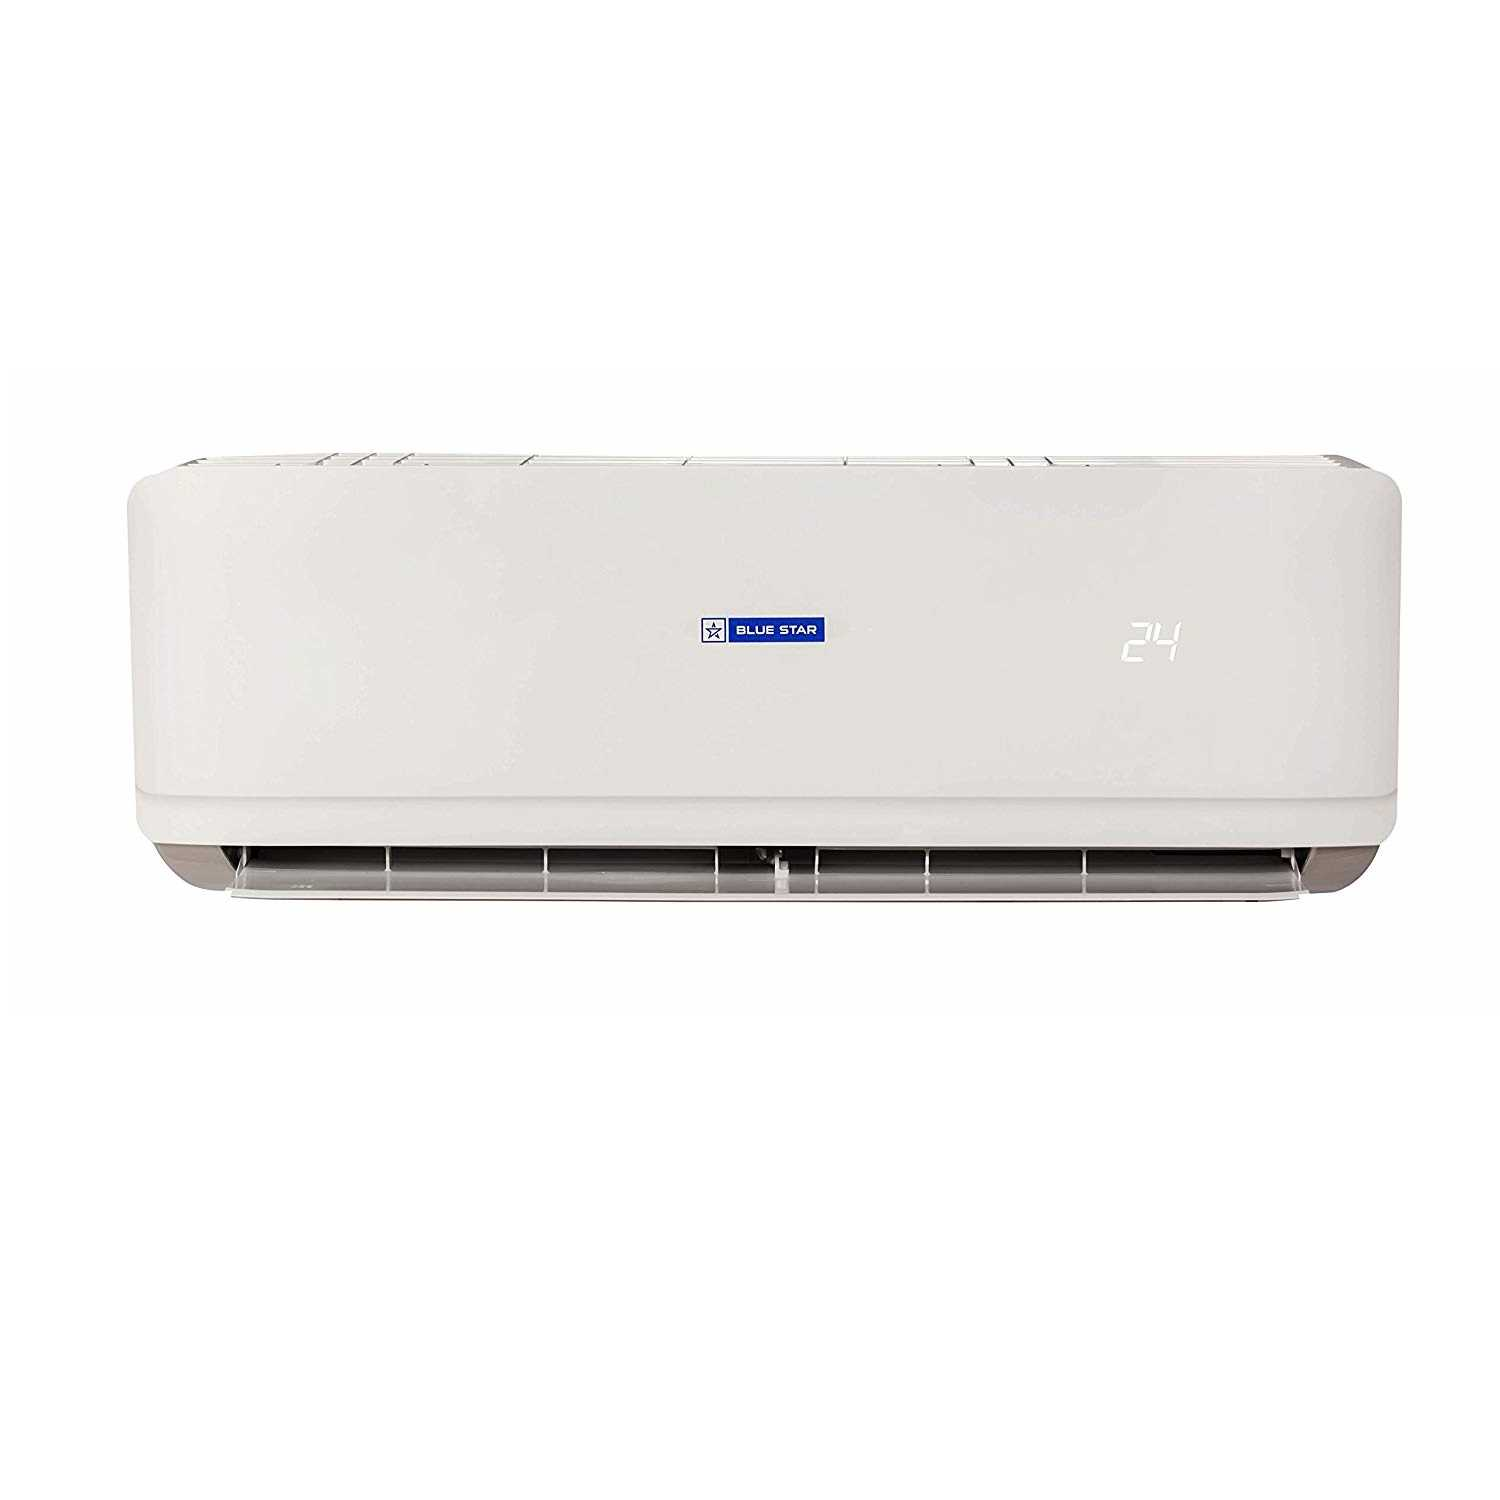 Blue Star FS318AATX 1.5 Ton 3 Star Split AC